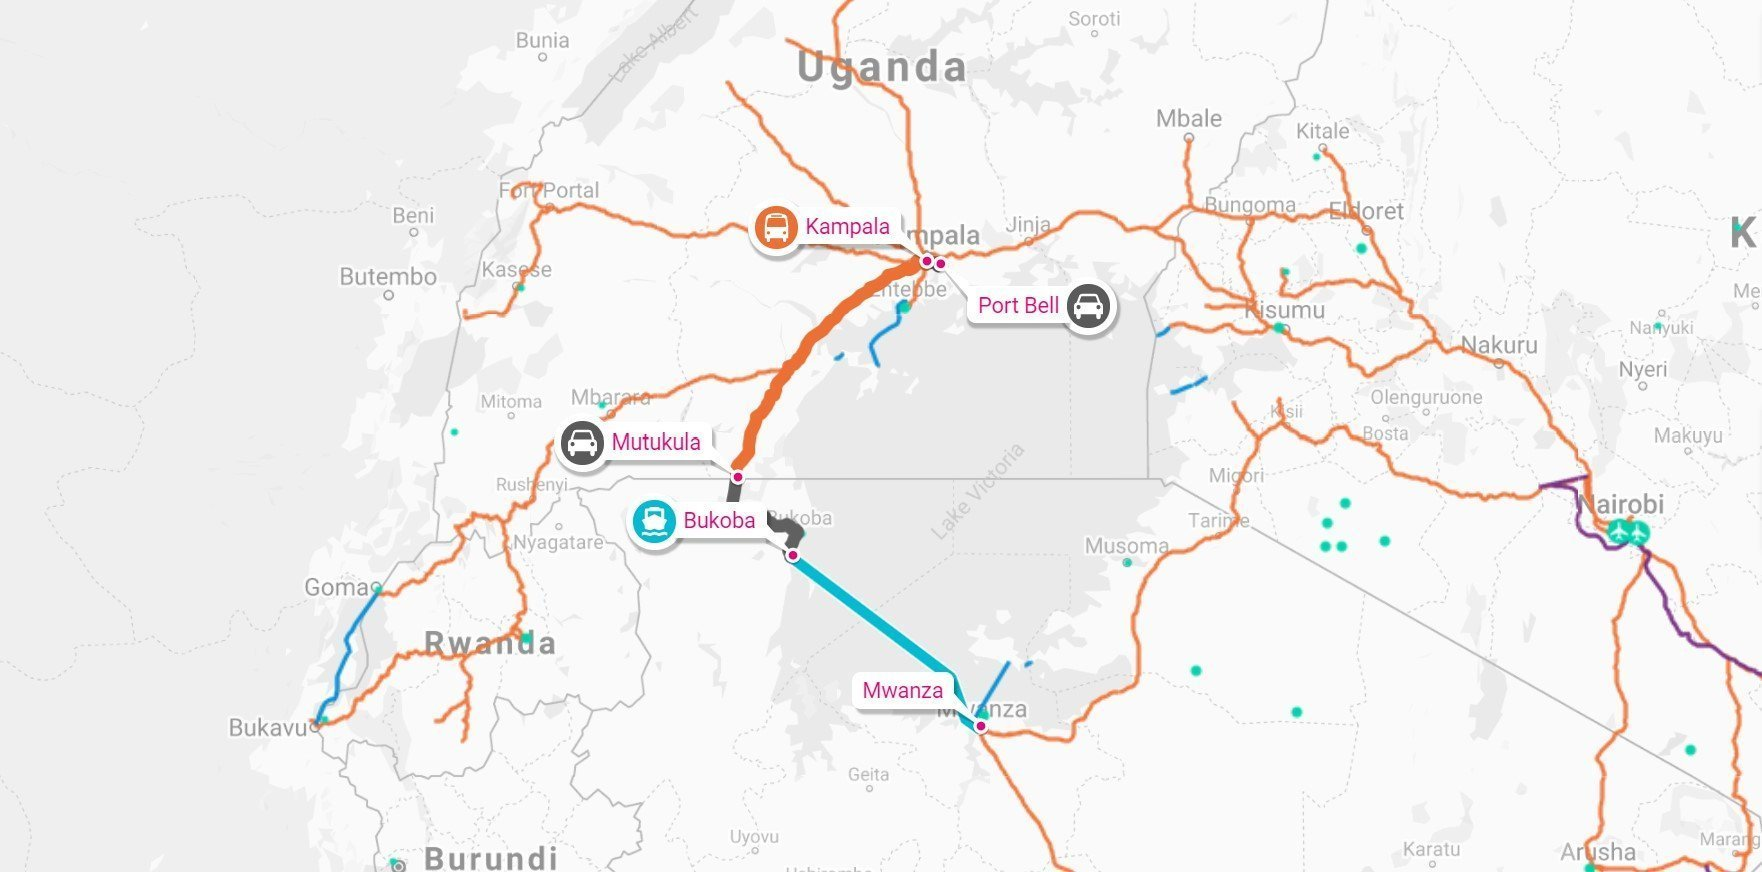 Map showing direct route between portbell and mwanza